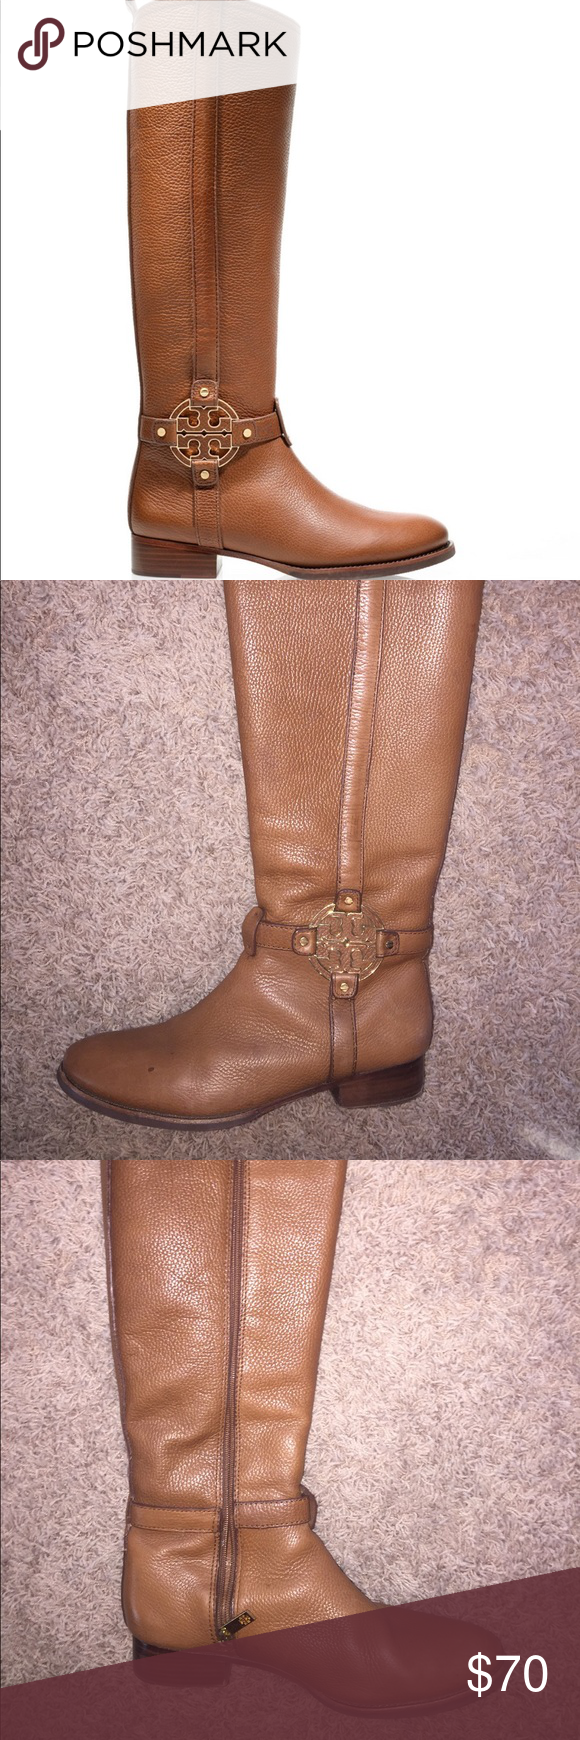 e493f66a0670 Tory Burch Riding Boots Visibly worn Tory Burch Riding Boots Tory Burch  Shoes Winter   Rain Boots